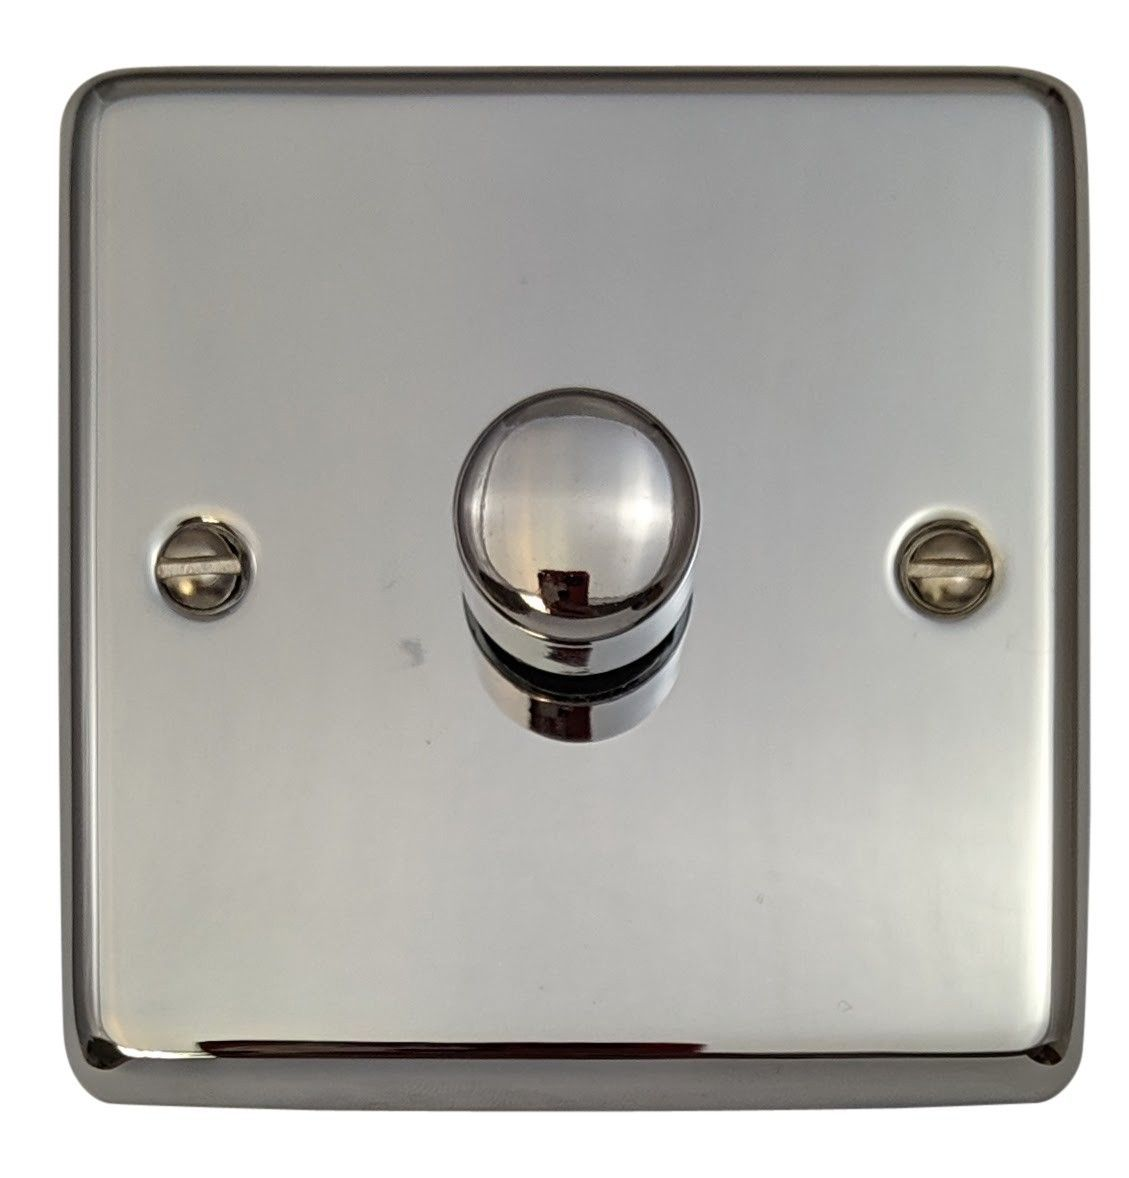 G&H CC15 Standard Plate Polished Chrome 1 Gang 1 or 2 Way 700W Dimmer Switch Single Plate